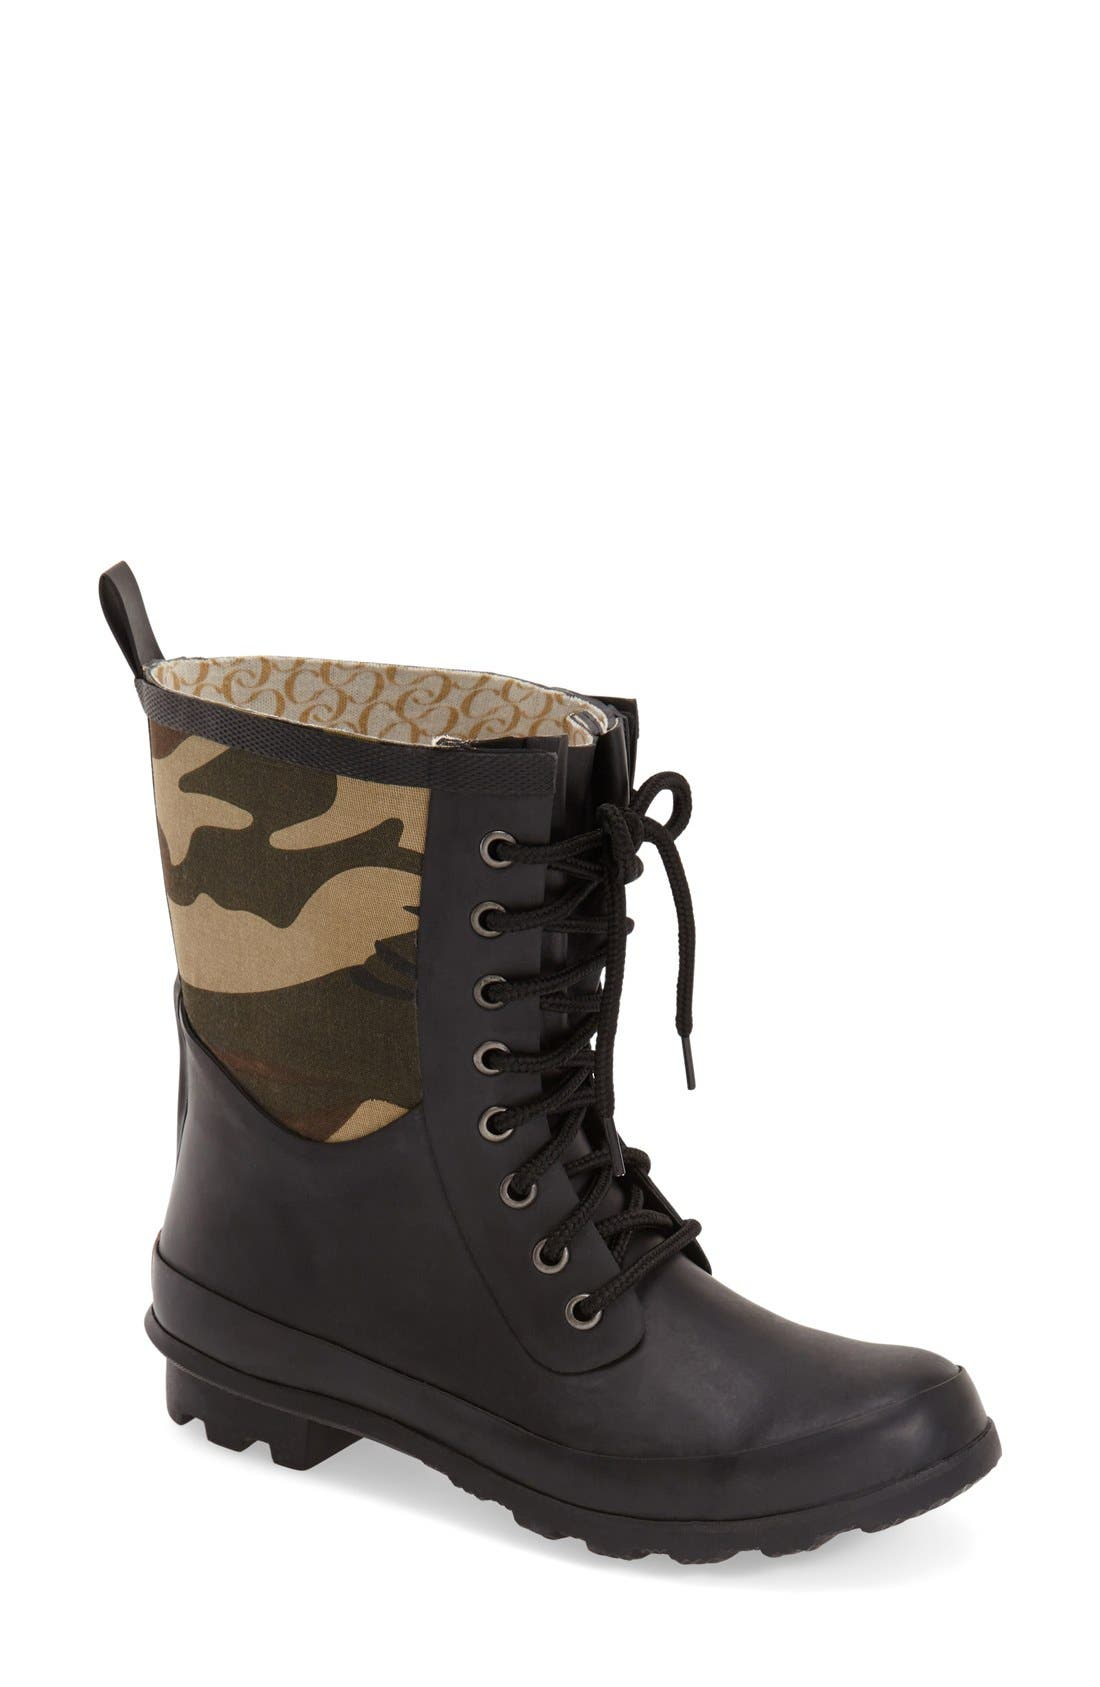 Alternate Image 1 Selected - Chooka 'Cara' Mid High Lace-Up Rain Boot (Women)